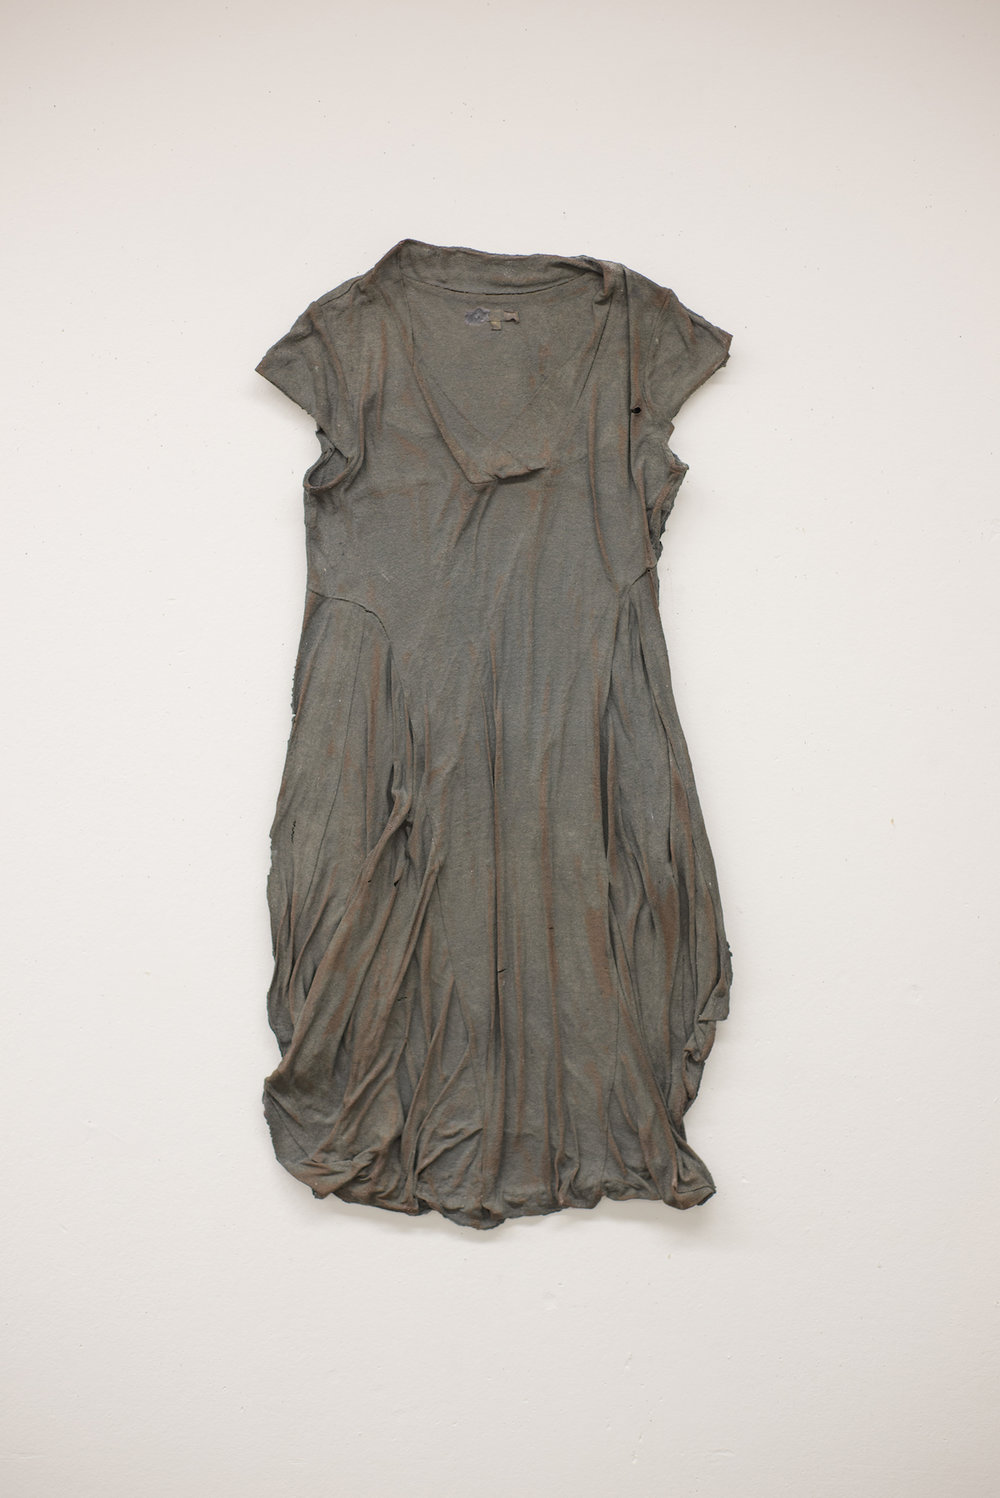 Saskia Scott, Fragments (Dress) 2017